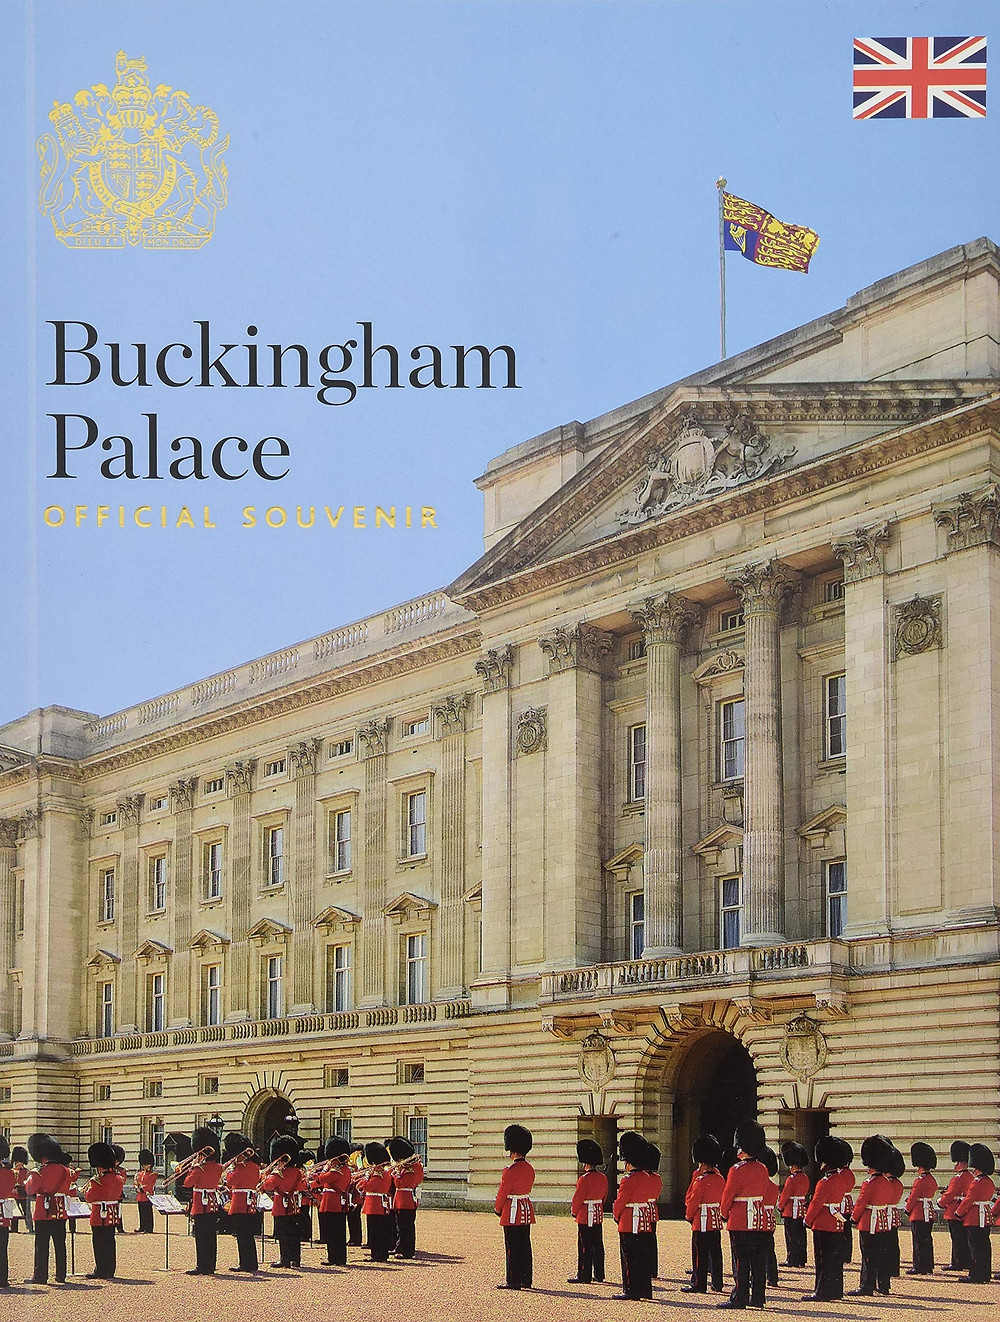 Buckingham palace official guidebook, with free worldwide delivery at Book depository